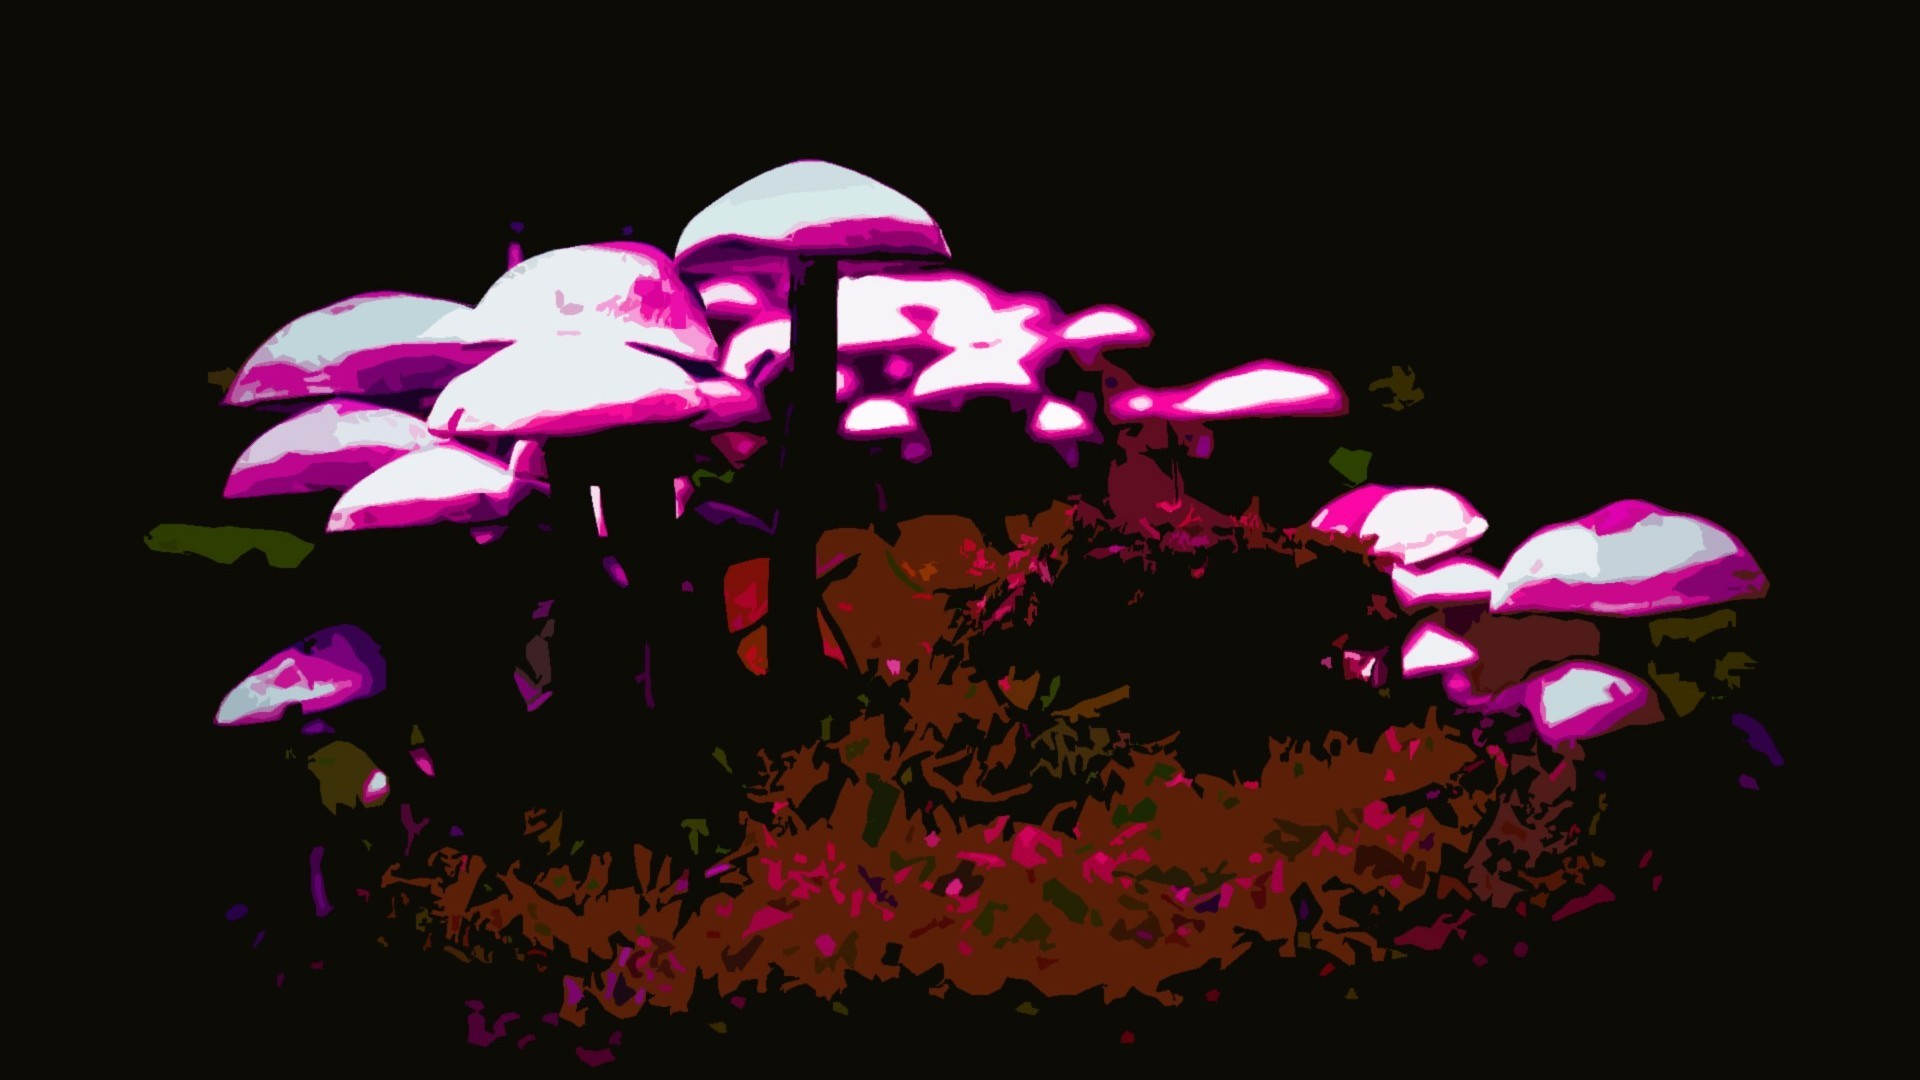 Res: 1920x1080, Trippy-Shroom-Wallpapers-Gallery-(51-Plus)-PIC-WPT404262